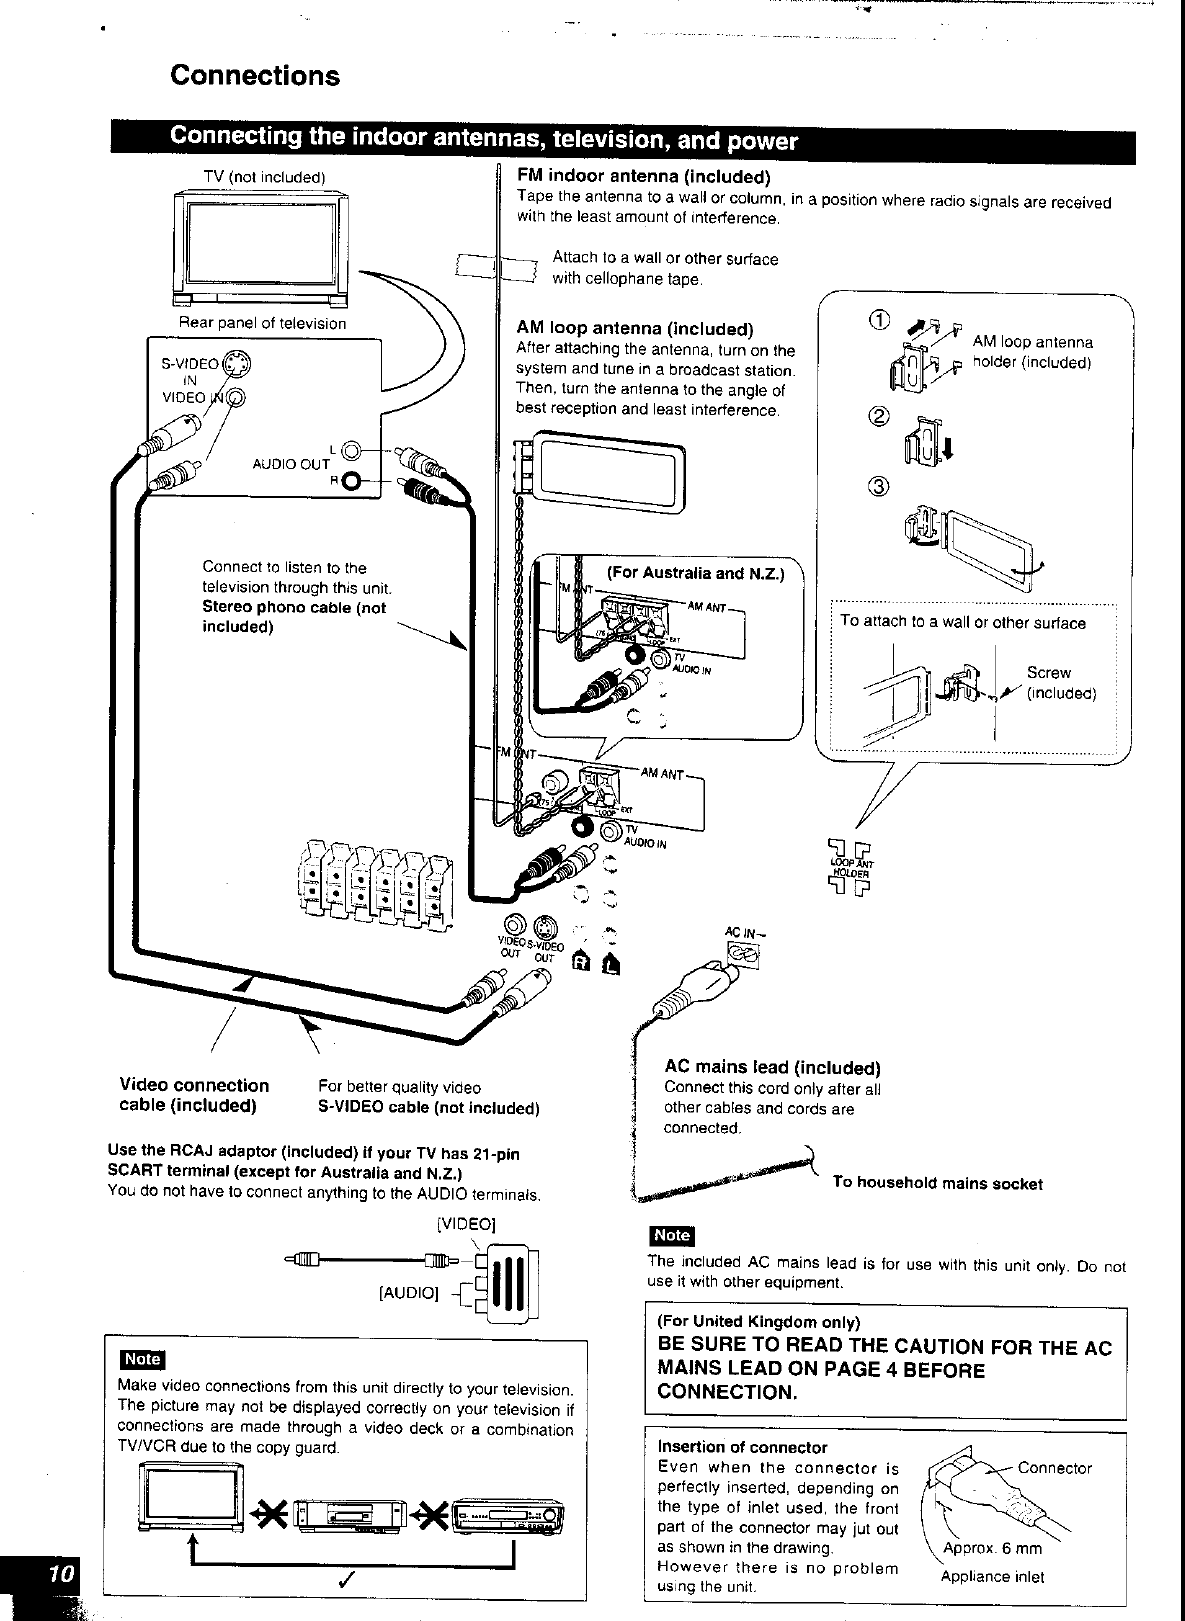 Page 10 of Panasonic Stereo System SC-HT80 User Guide